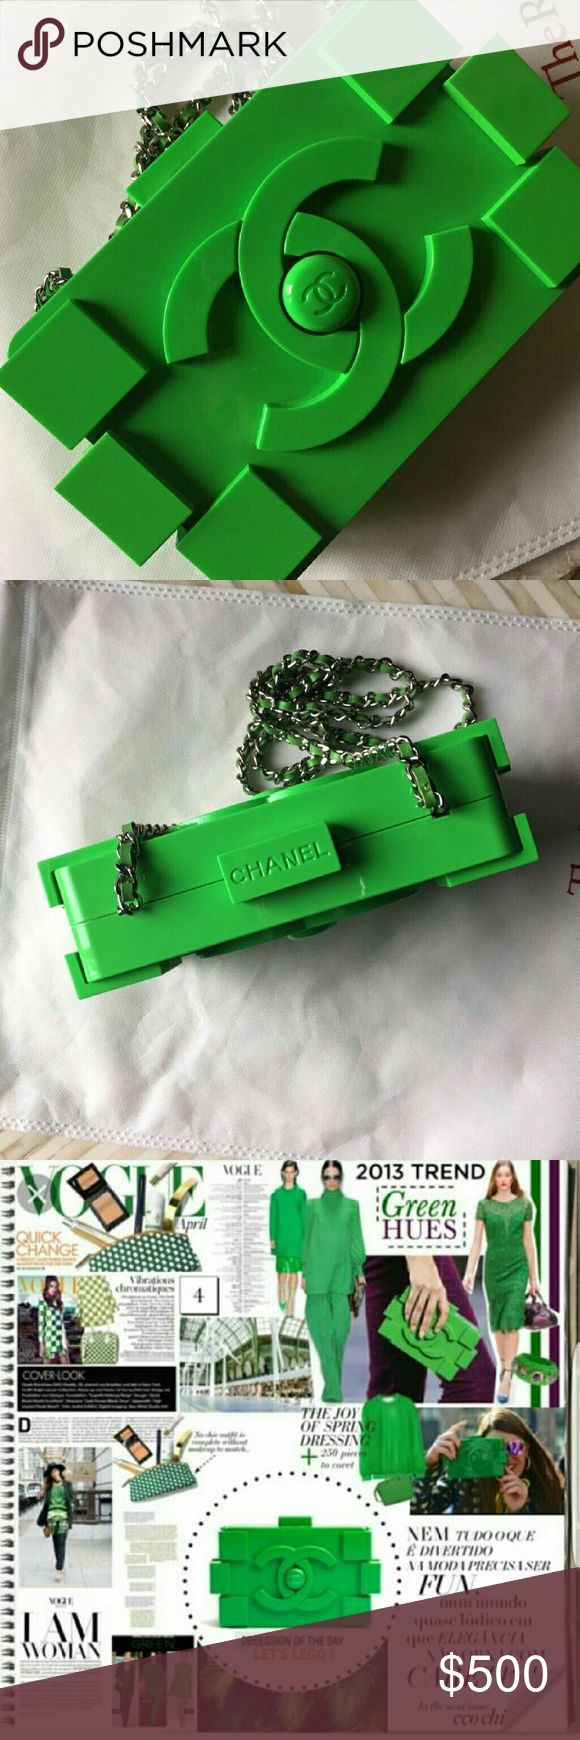 Chanel Lego Plexiglas Clutch with Strap Beautiful Chanel Lego Plexiglas Clutch with Strap Great Gift for Christmas Party Season It will be well packed and be inside a dust cover ~ * ~ Excellent Condition ~ * ~   ~ * ~ No signs of visible wear or damage ~ * ~  Design: ~ Limited Edition Classic Green Plexiglas Lego Clutch  ~  Features large CC logo Front and back ~ May be carried as a clutch over the shoulder ~ Interior is lined in black leather ~ * ~  ~ Main compartment with center zipper…